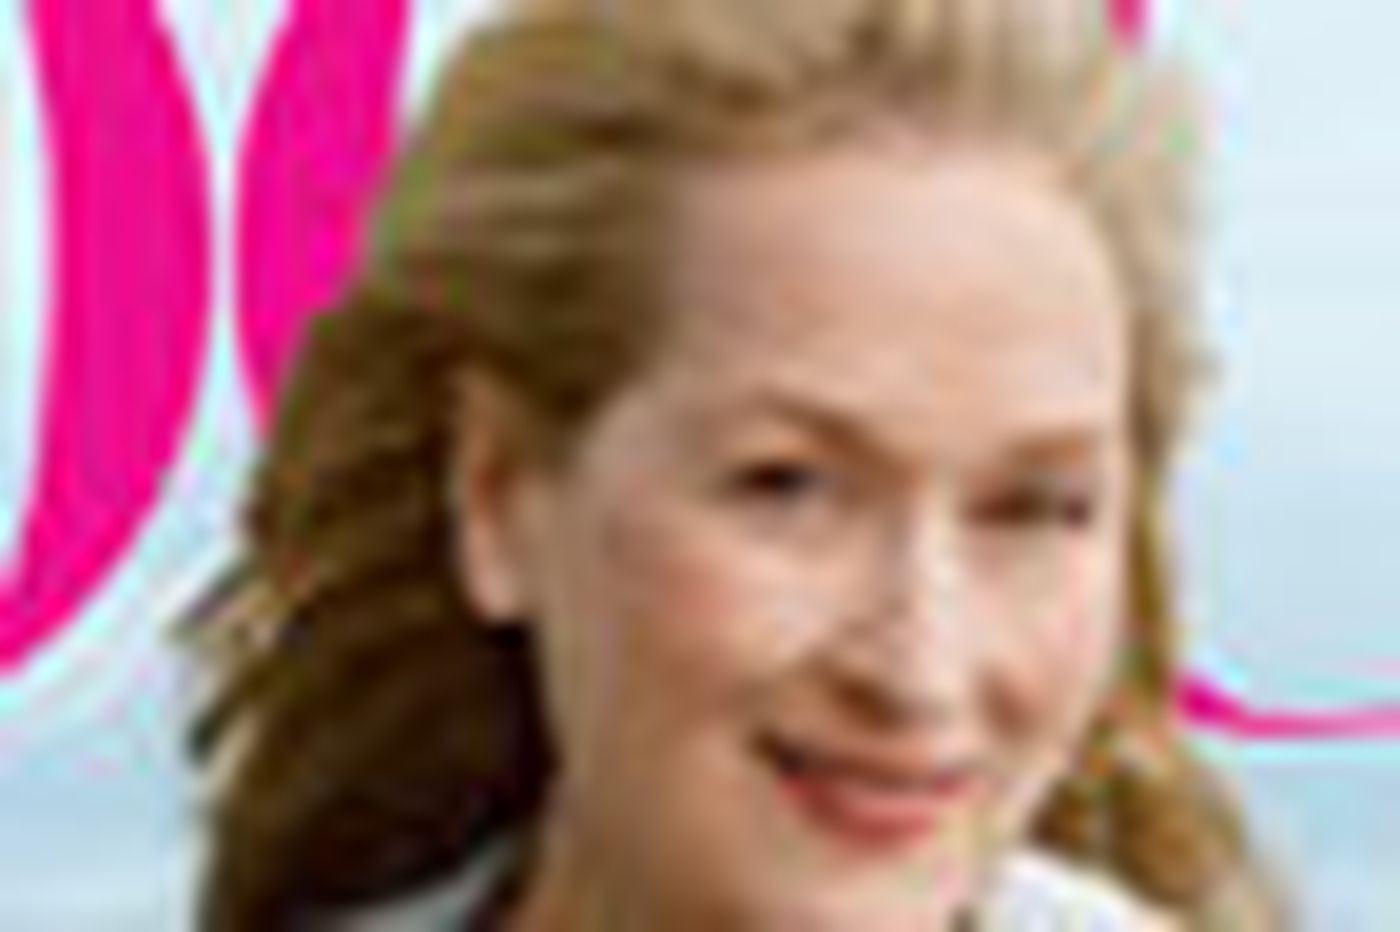 Sideshow: Streep, 62, Vogue's cover girl